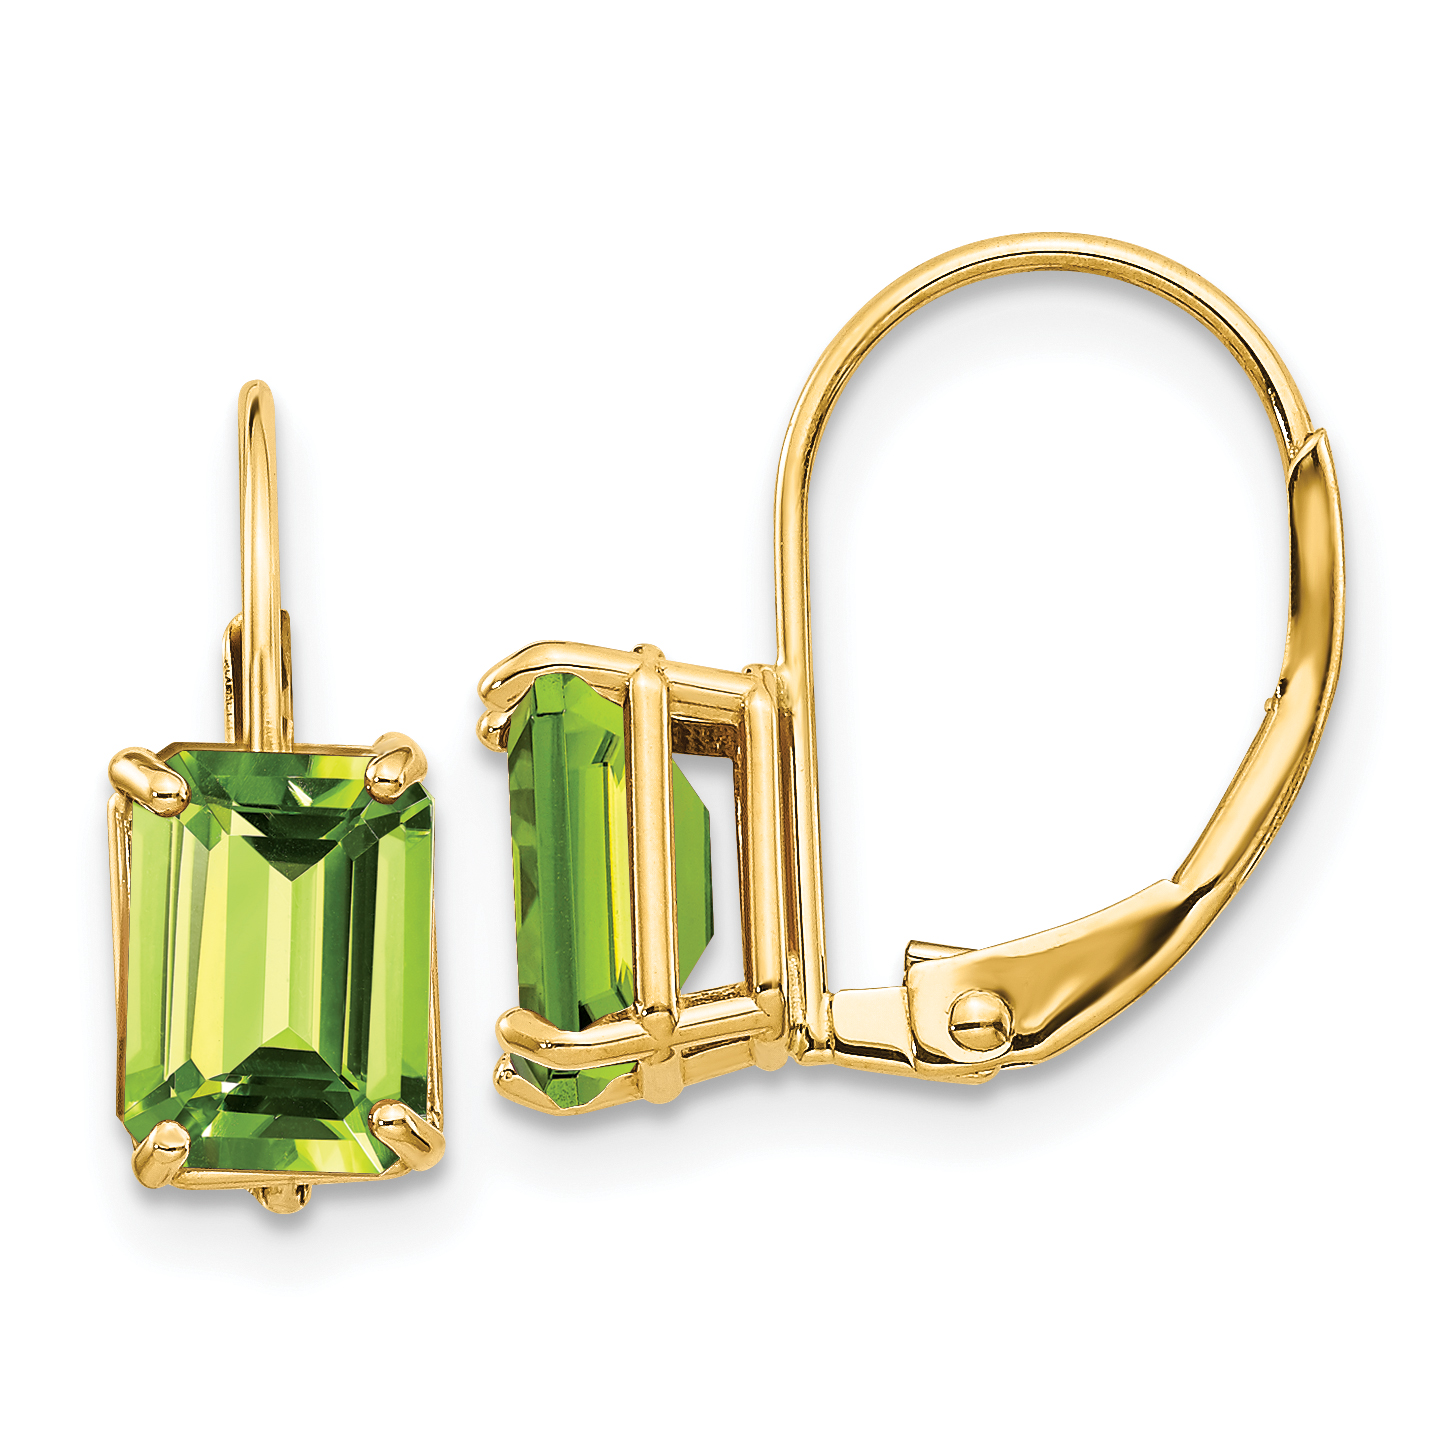 14k Yellow Gold 7x5mm Green Peridot Leverback Earrings Lever Back Drop Dangle Gemstone Prong Fine Jewelry Gifts For Women For Her - image 2 of 2